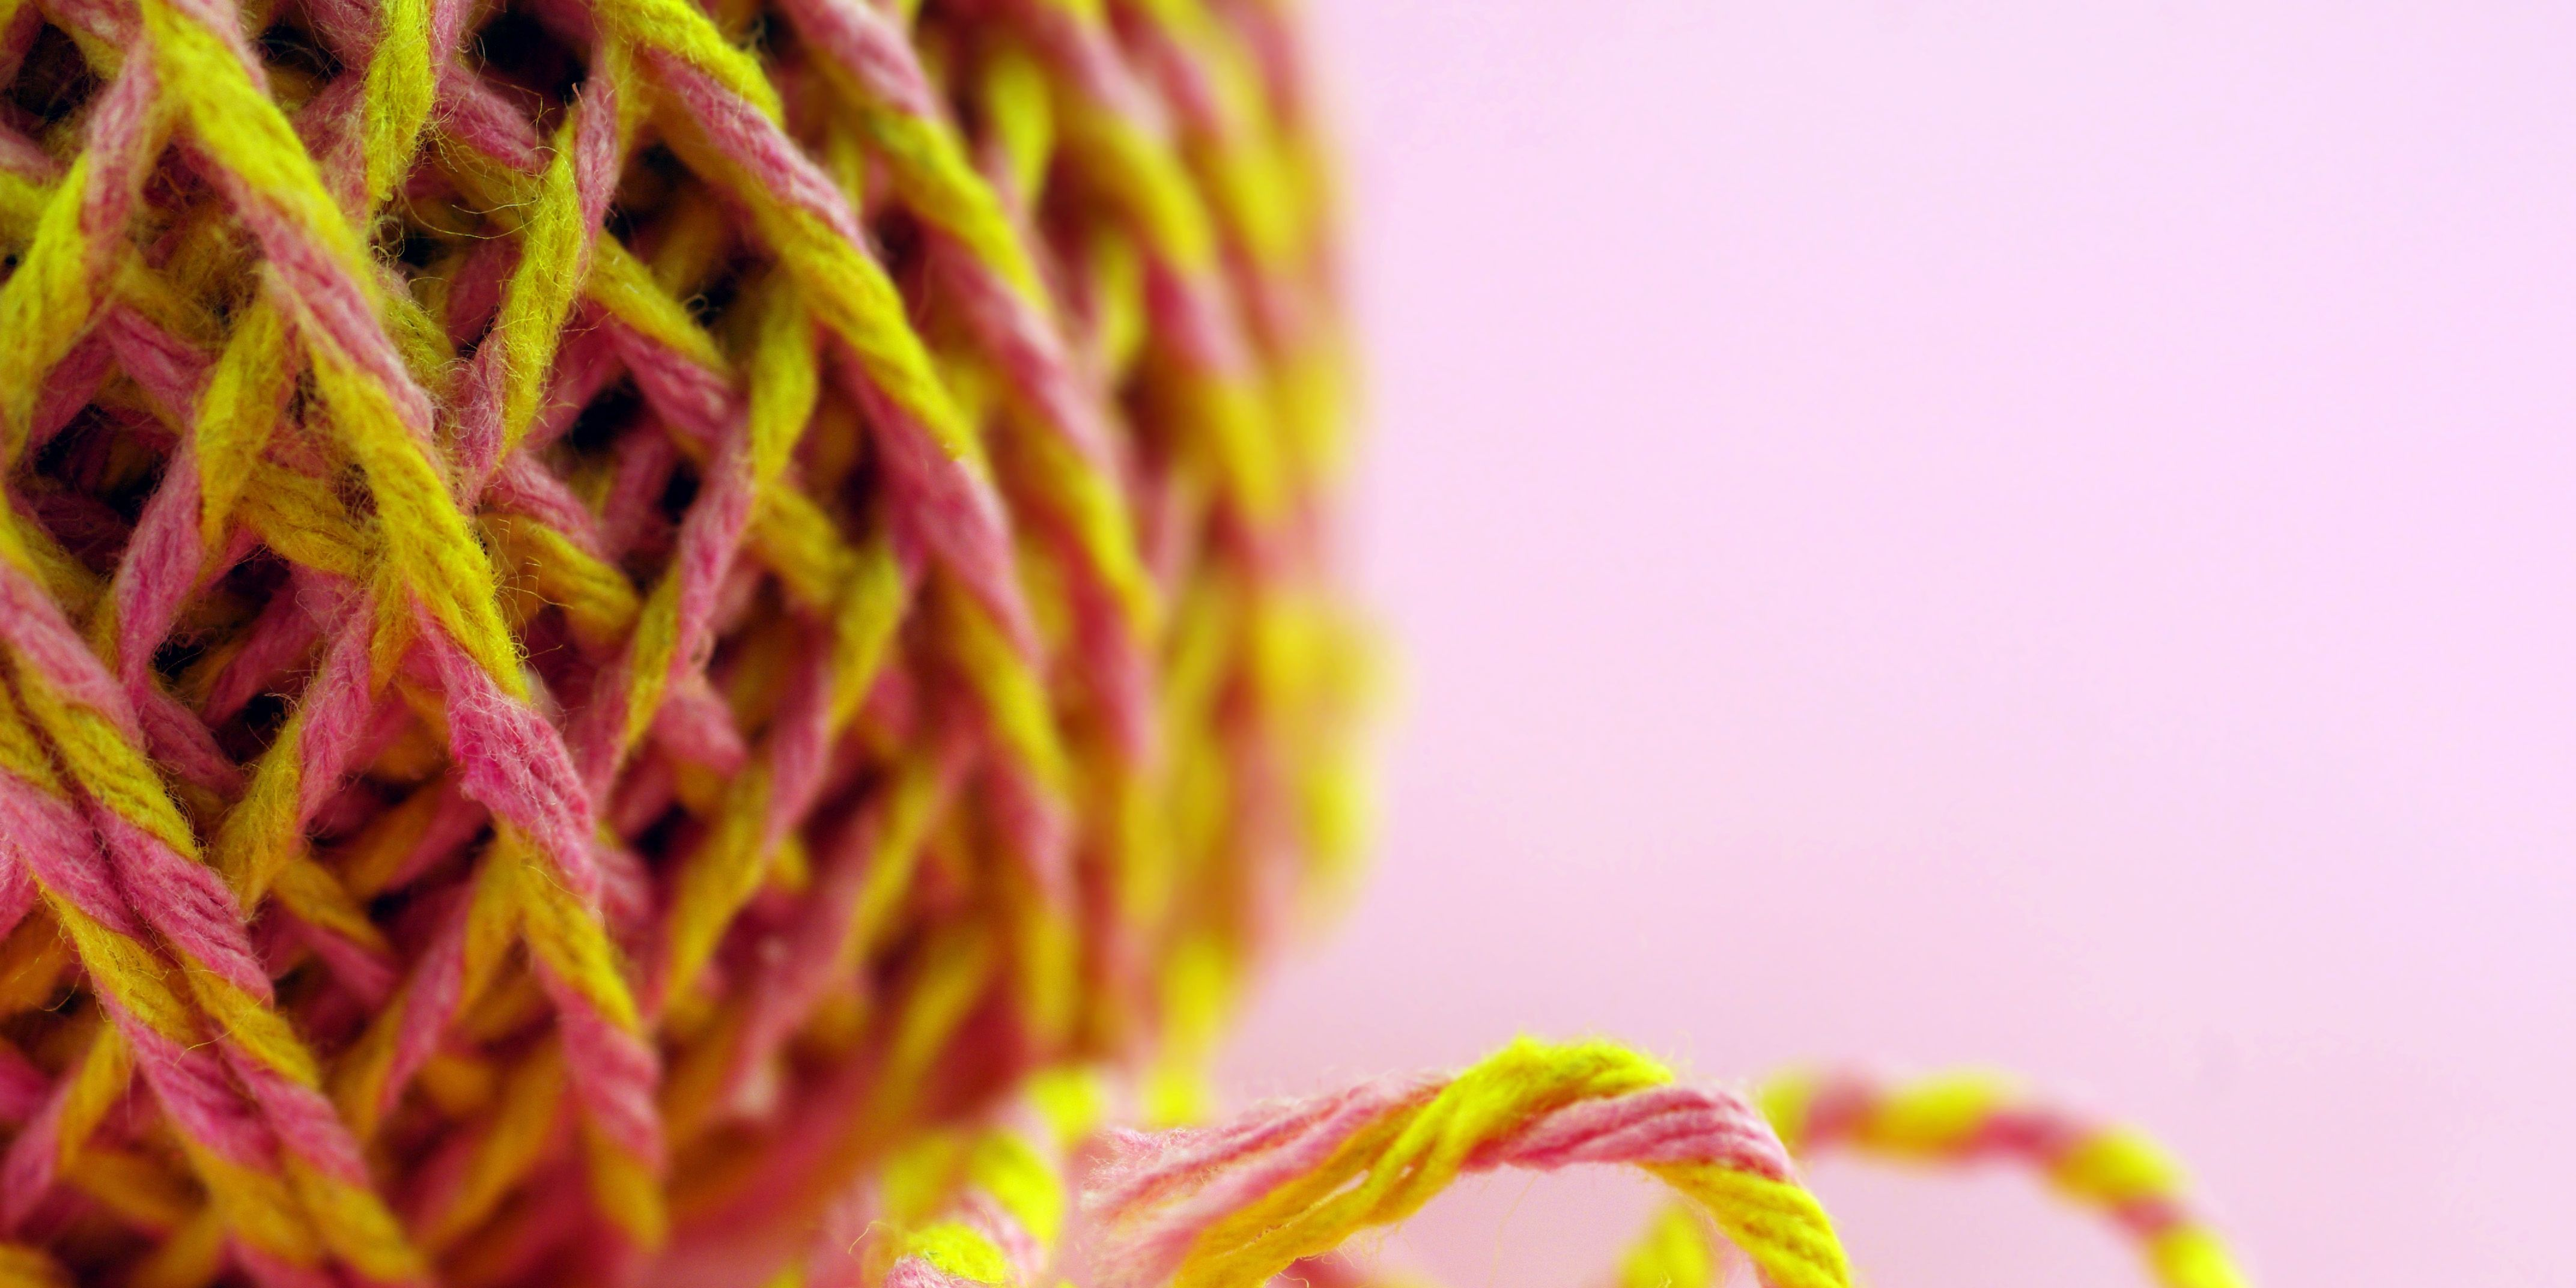 Ball of Pink and Yellow String, Extreme Close-Up